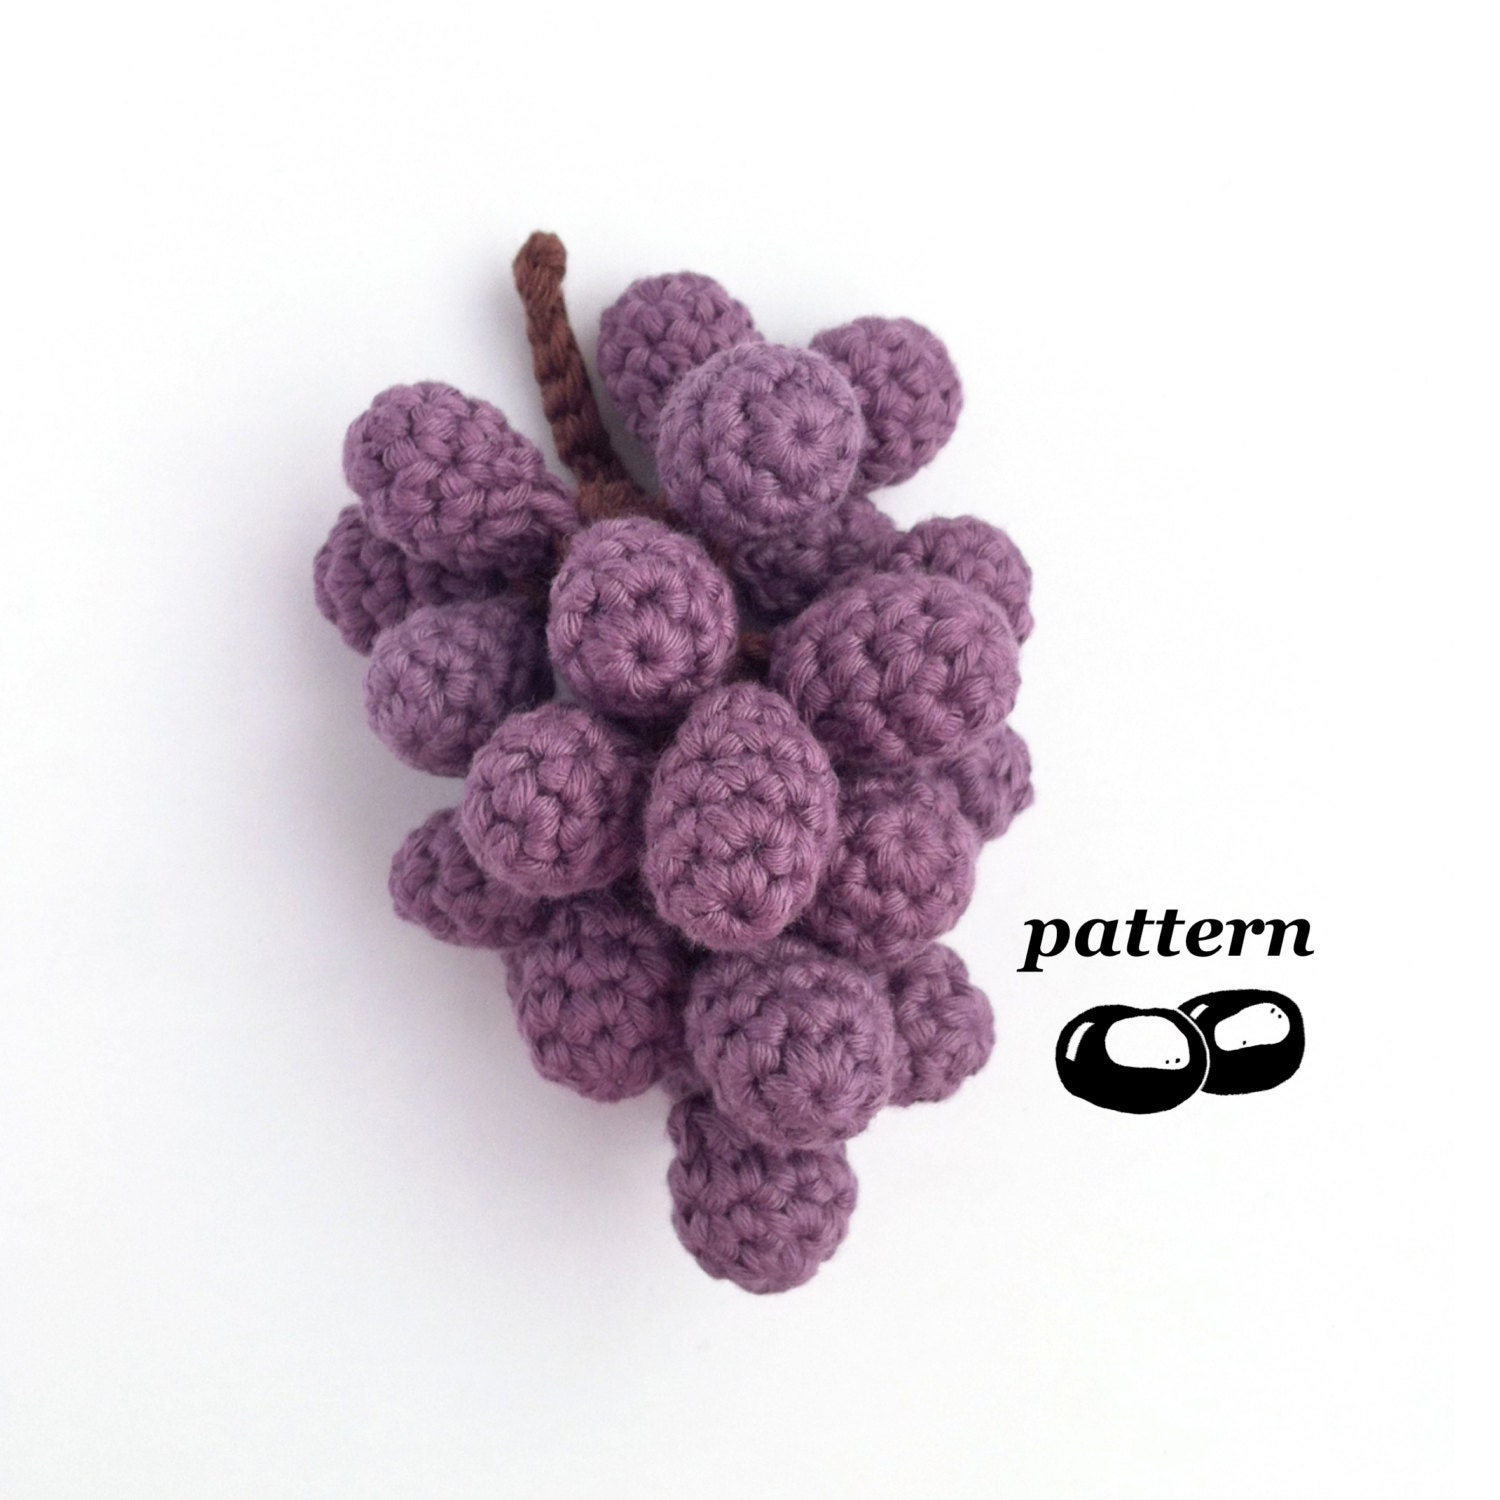 Amigurumi Grapes Pattern : Crochet Grapes Pattern / Bunch of Grapes / Crochet Fruit